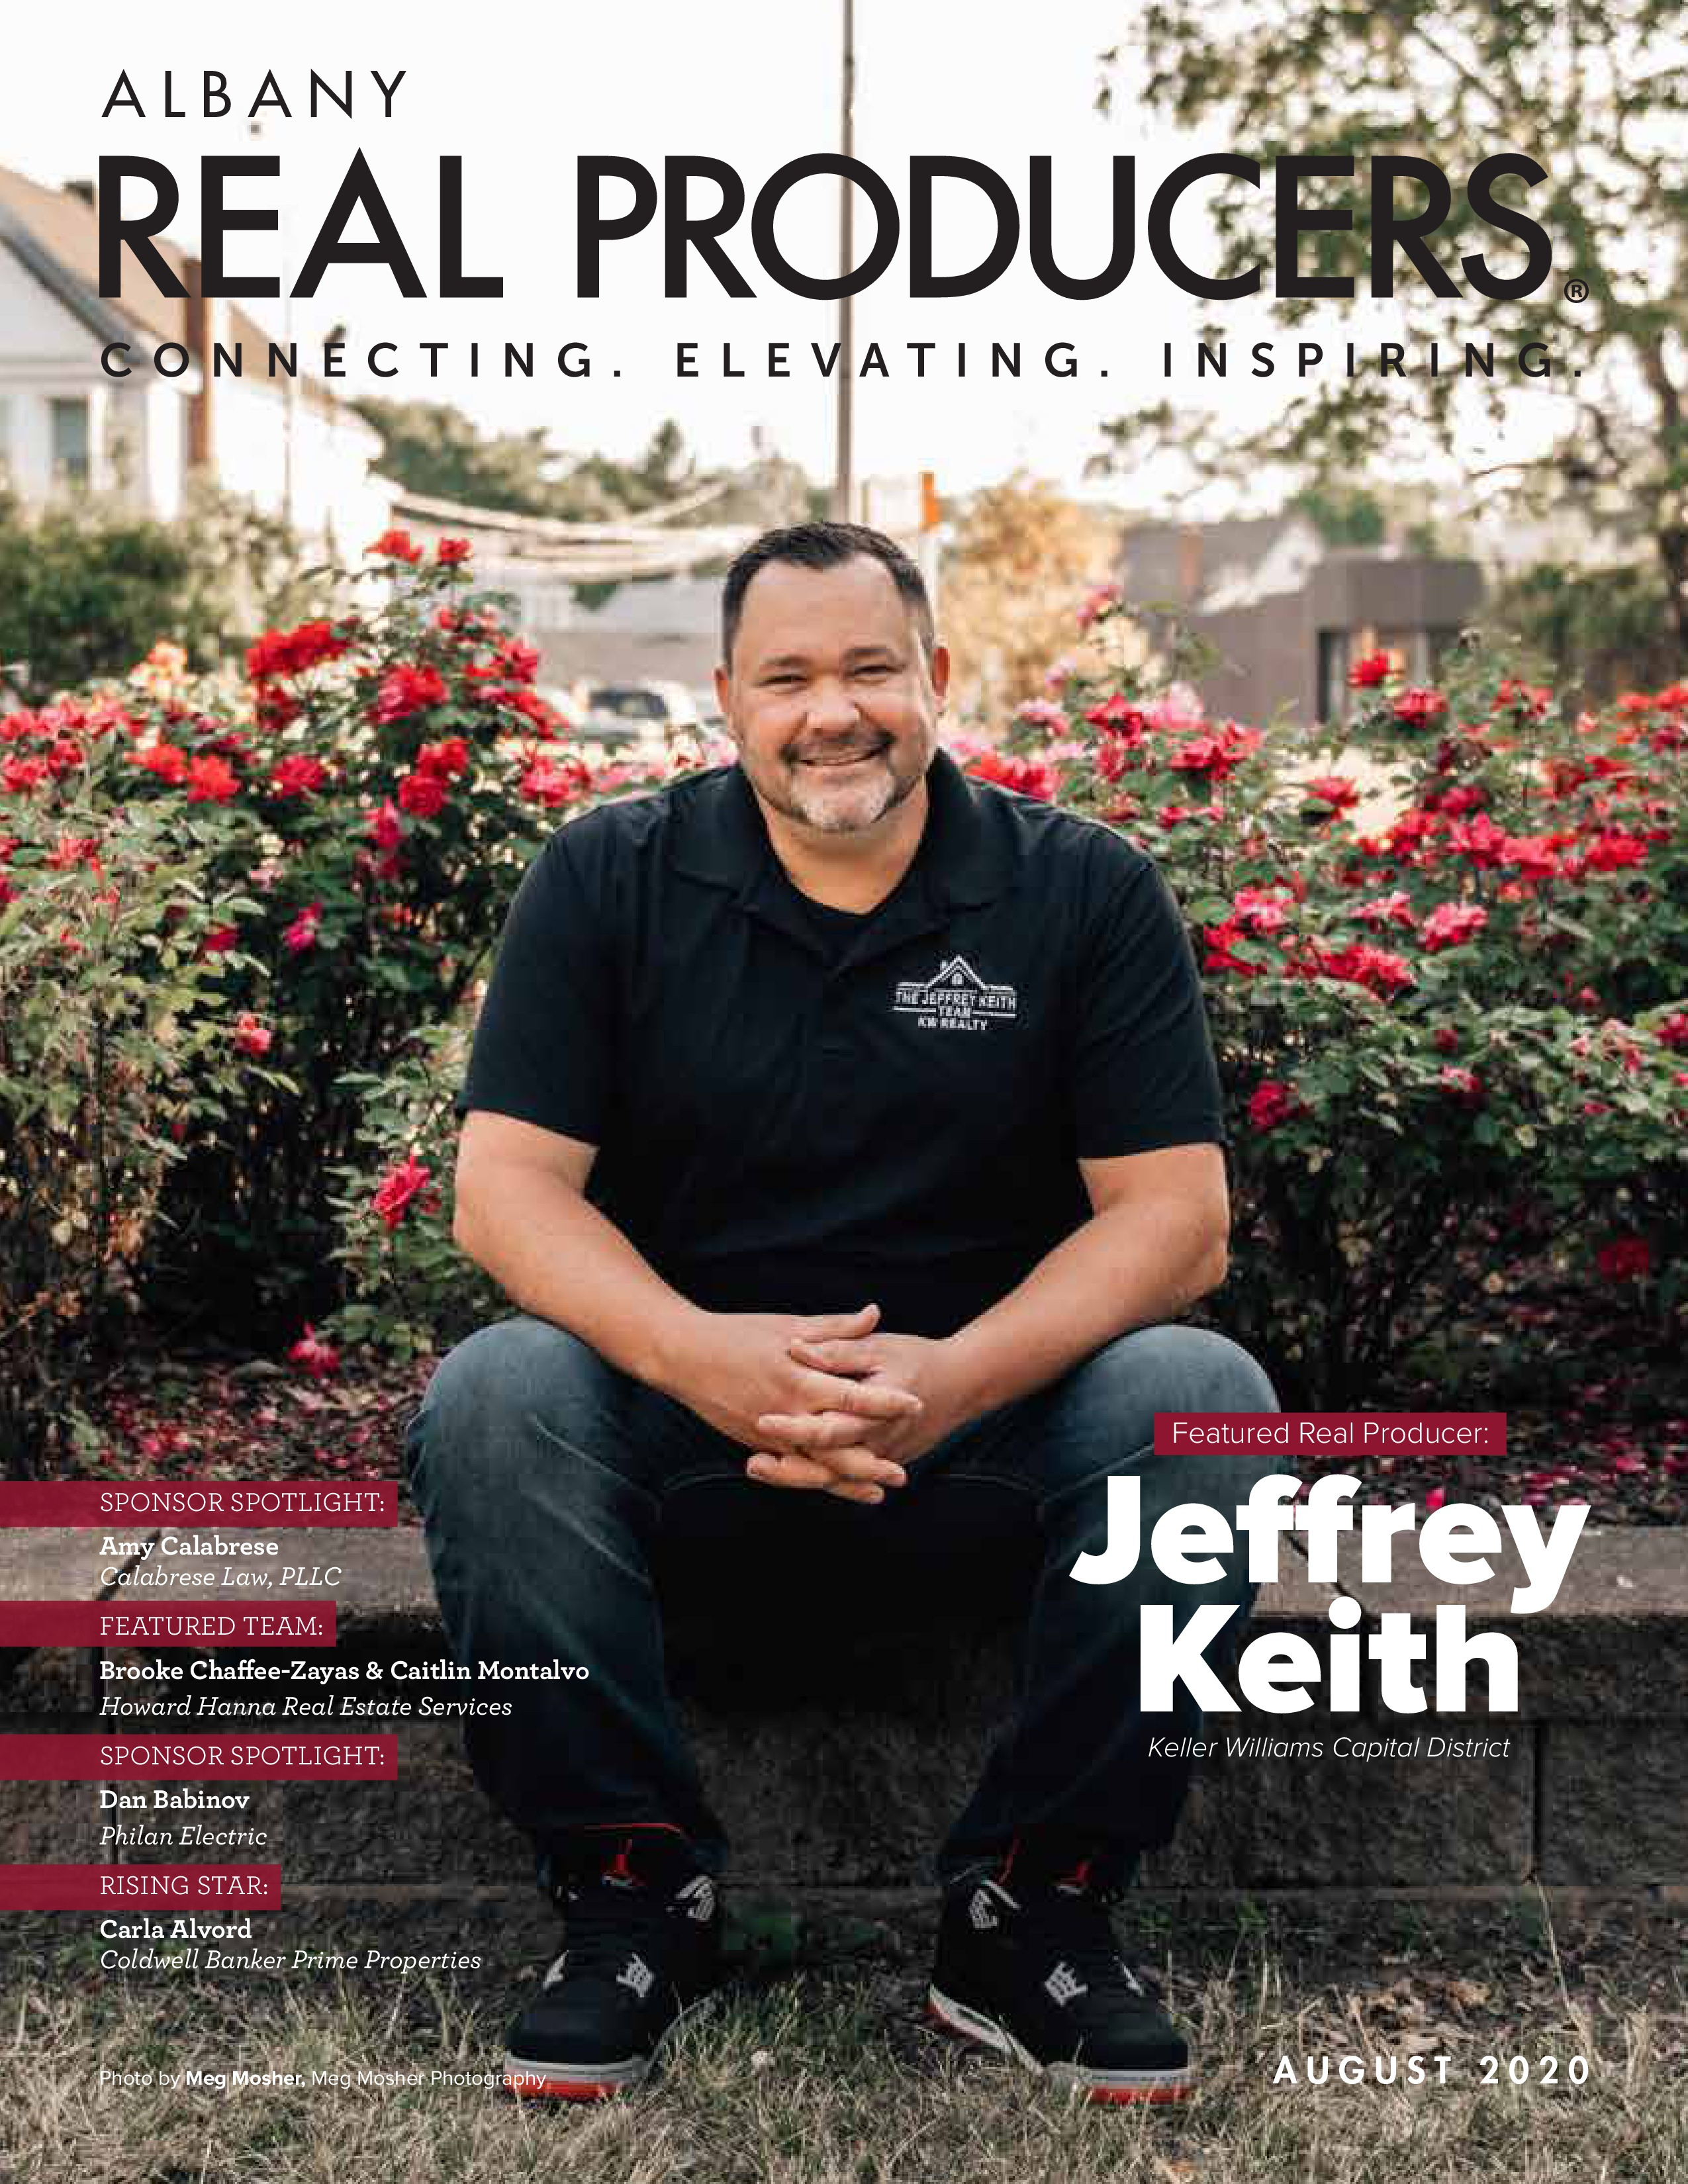 Albany Real Producers 2020-08-01